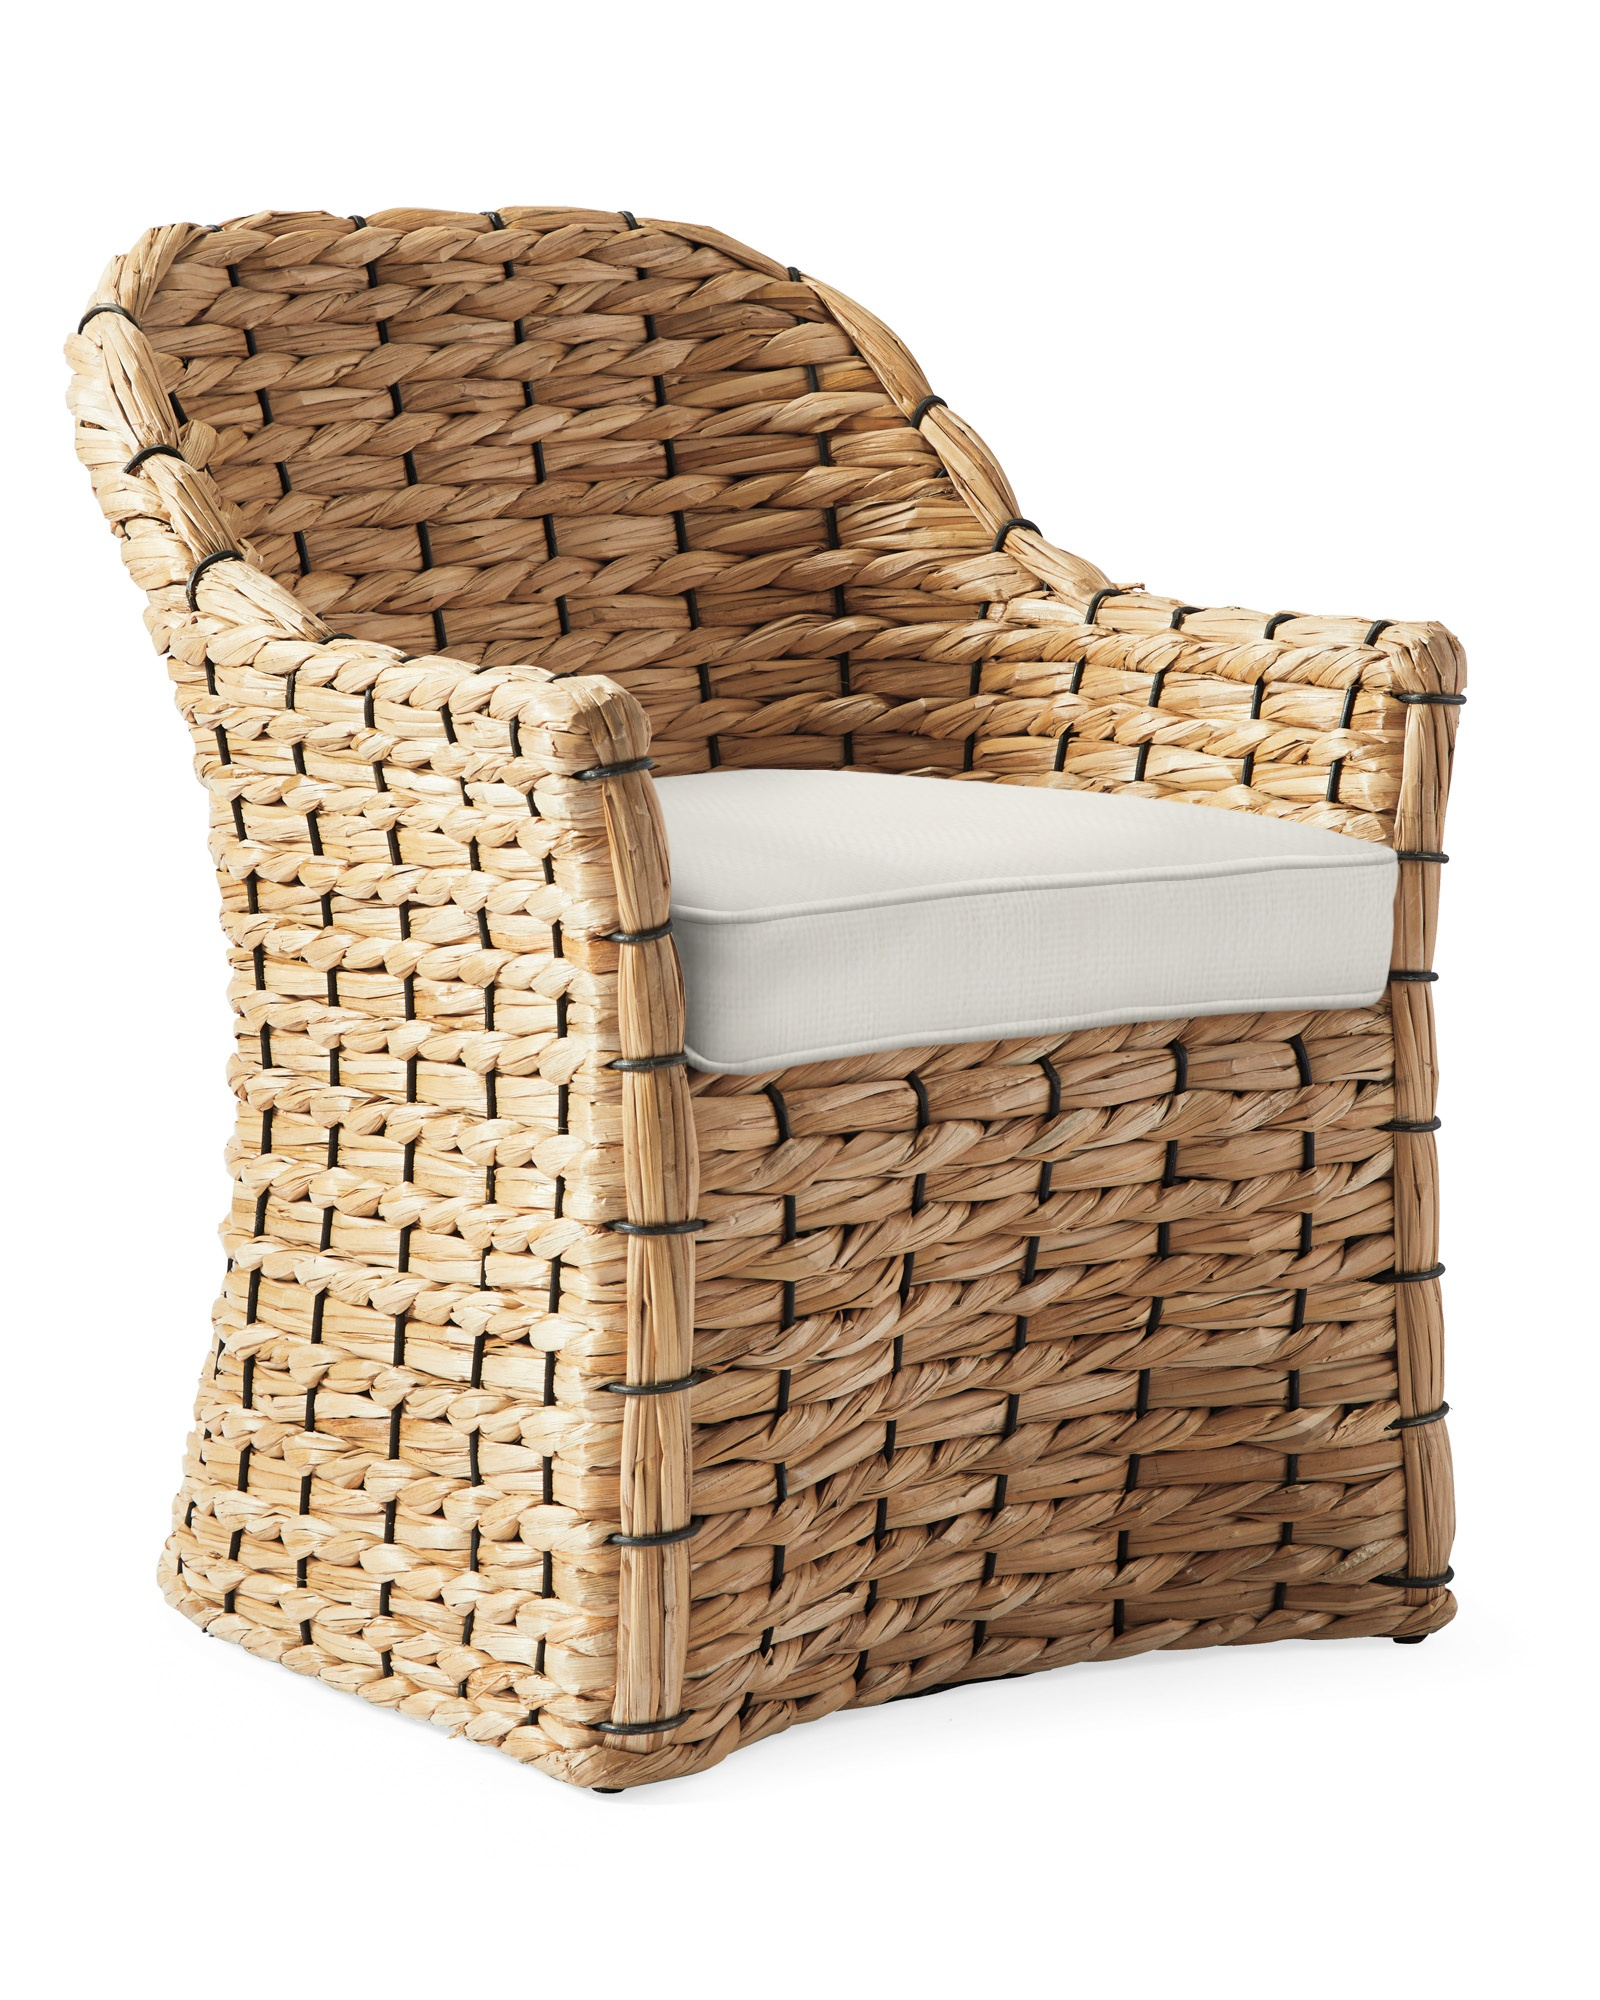 Cushion Cover for Islesboro Chair, Perennials Basketweave Chalk